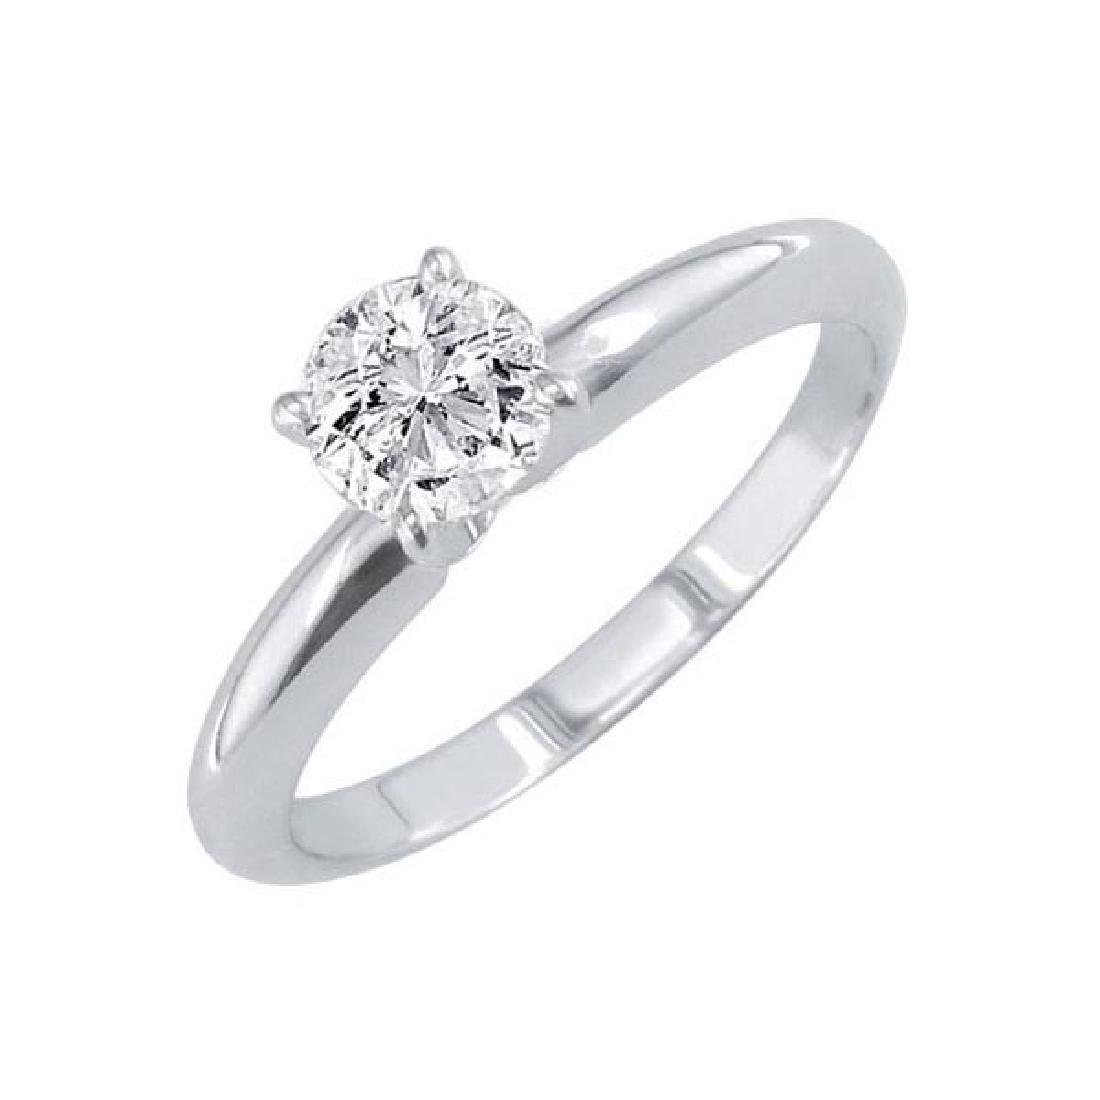 Certified 1.03 CTW Round Diamond Solitaire 14k Ring D/S